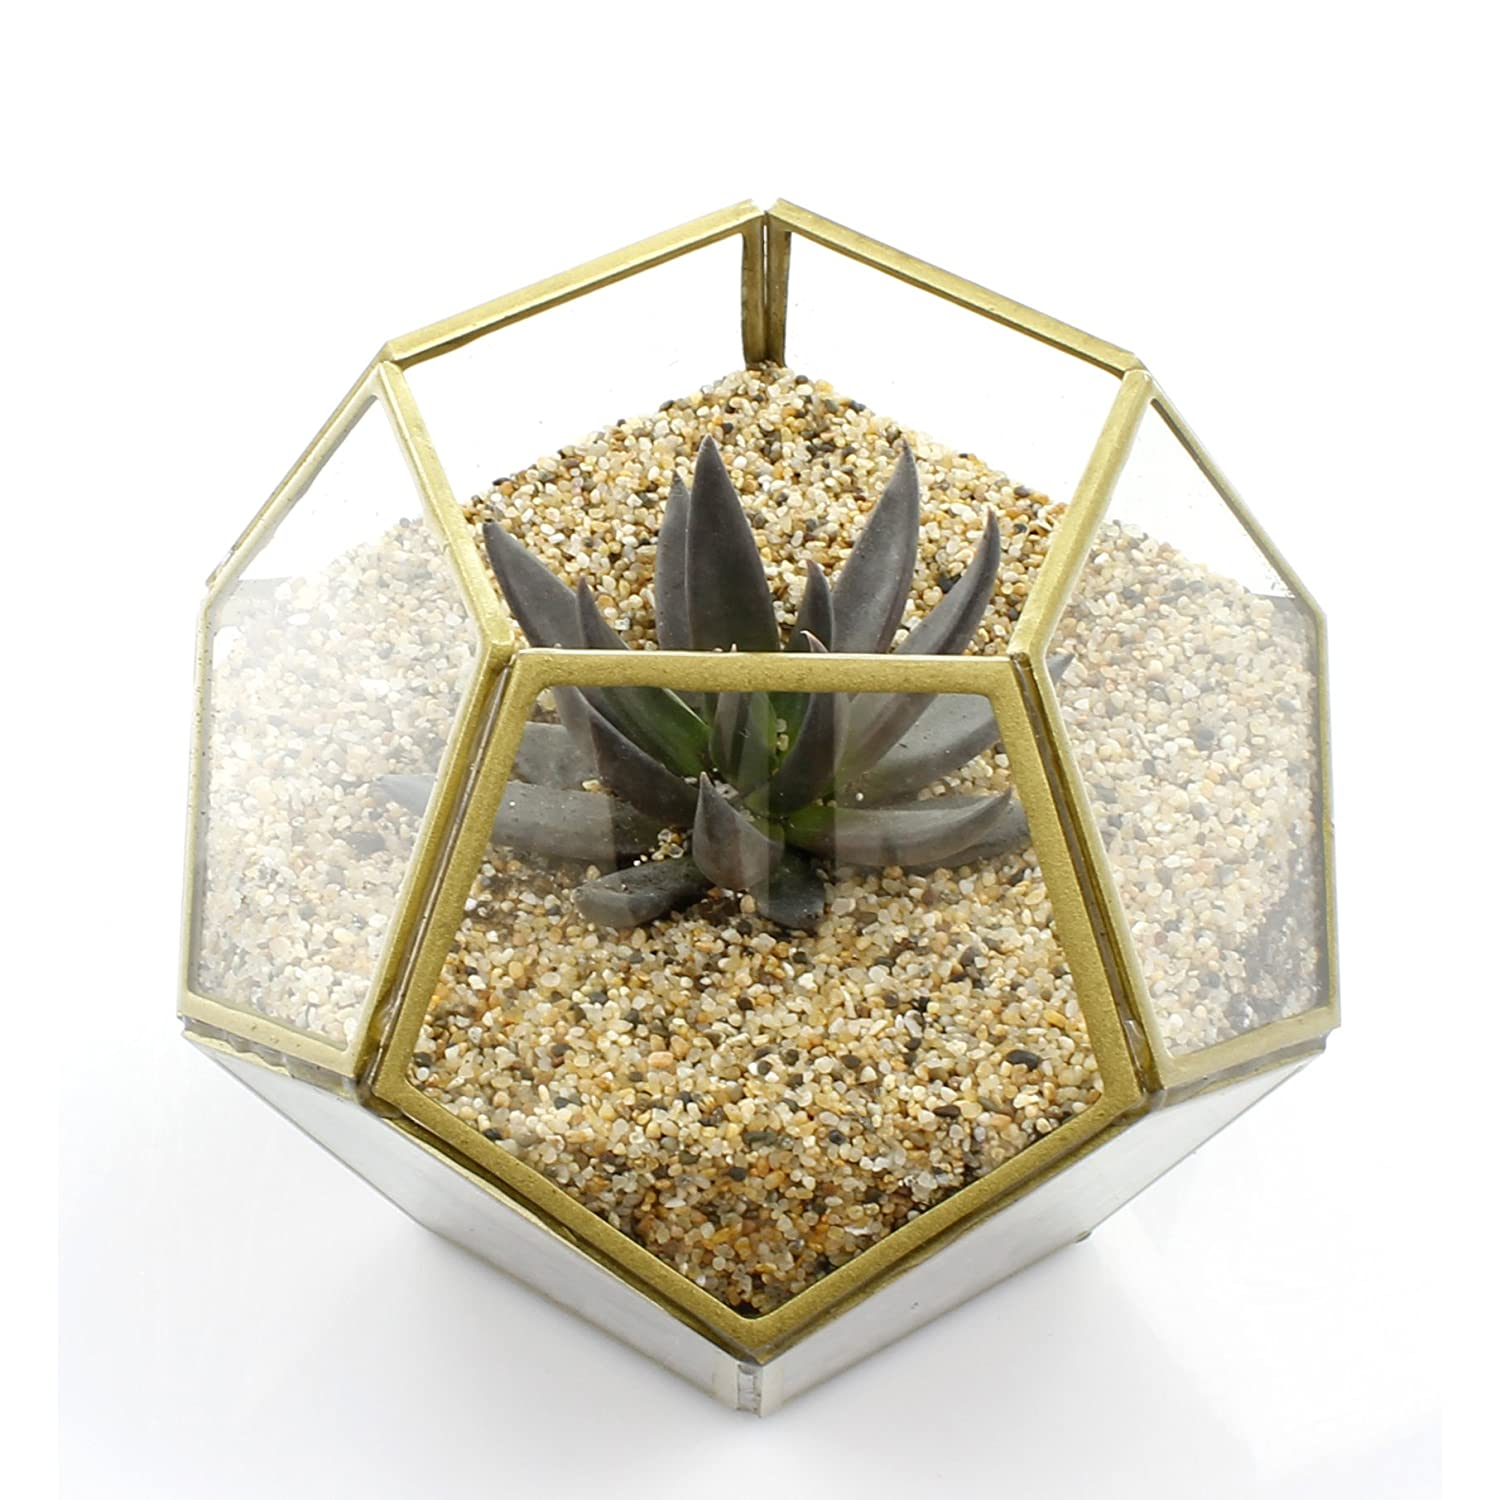 NW Wholesaler - Thick Watertight Glass Dodecahedron Geometric Terrarium with Gold Trim